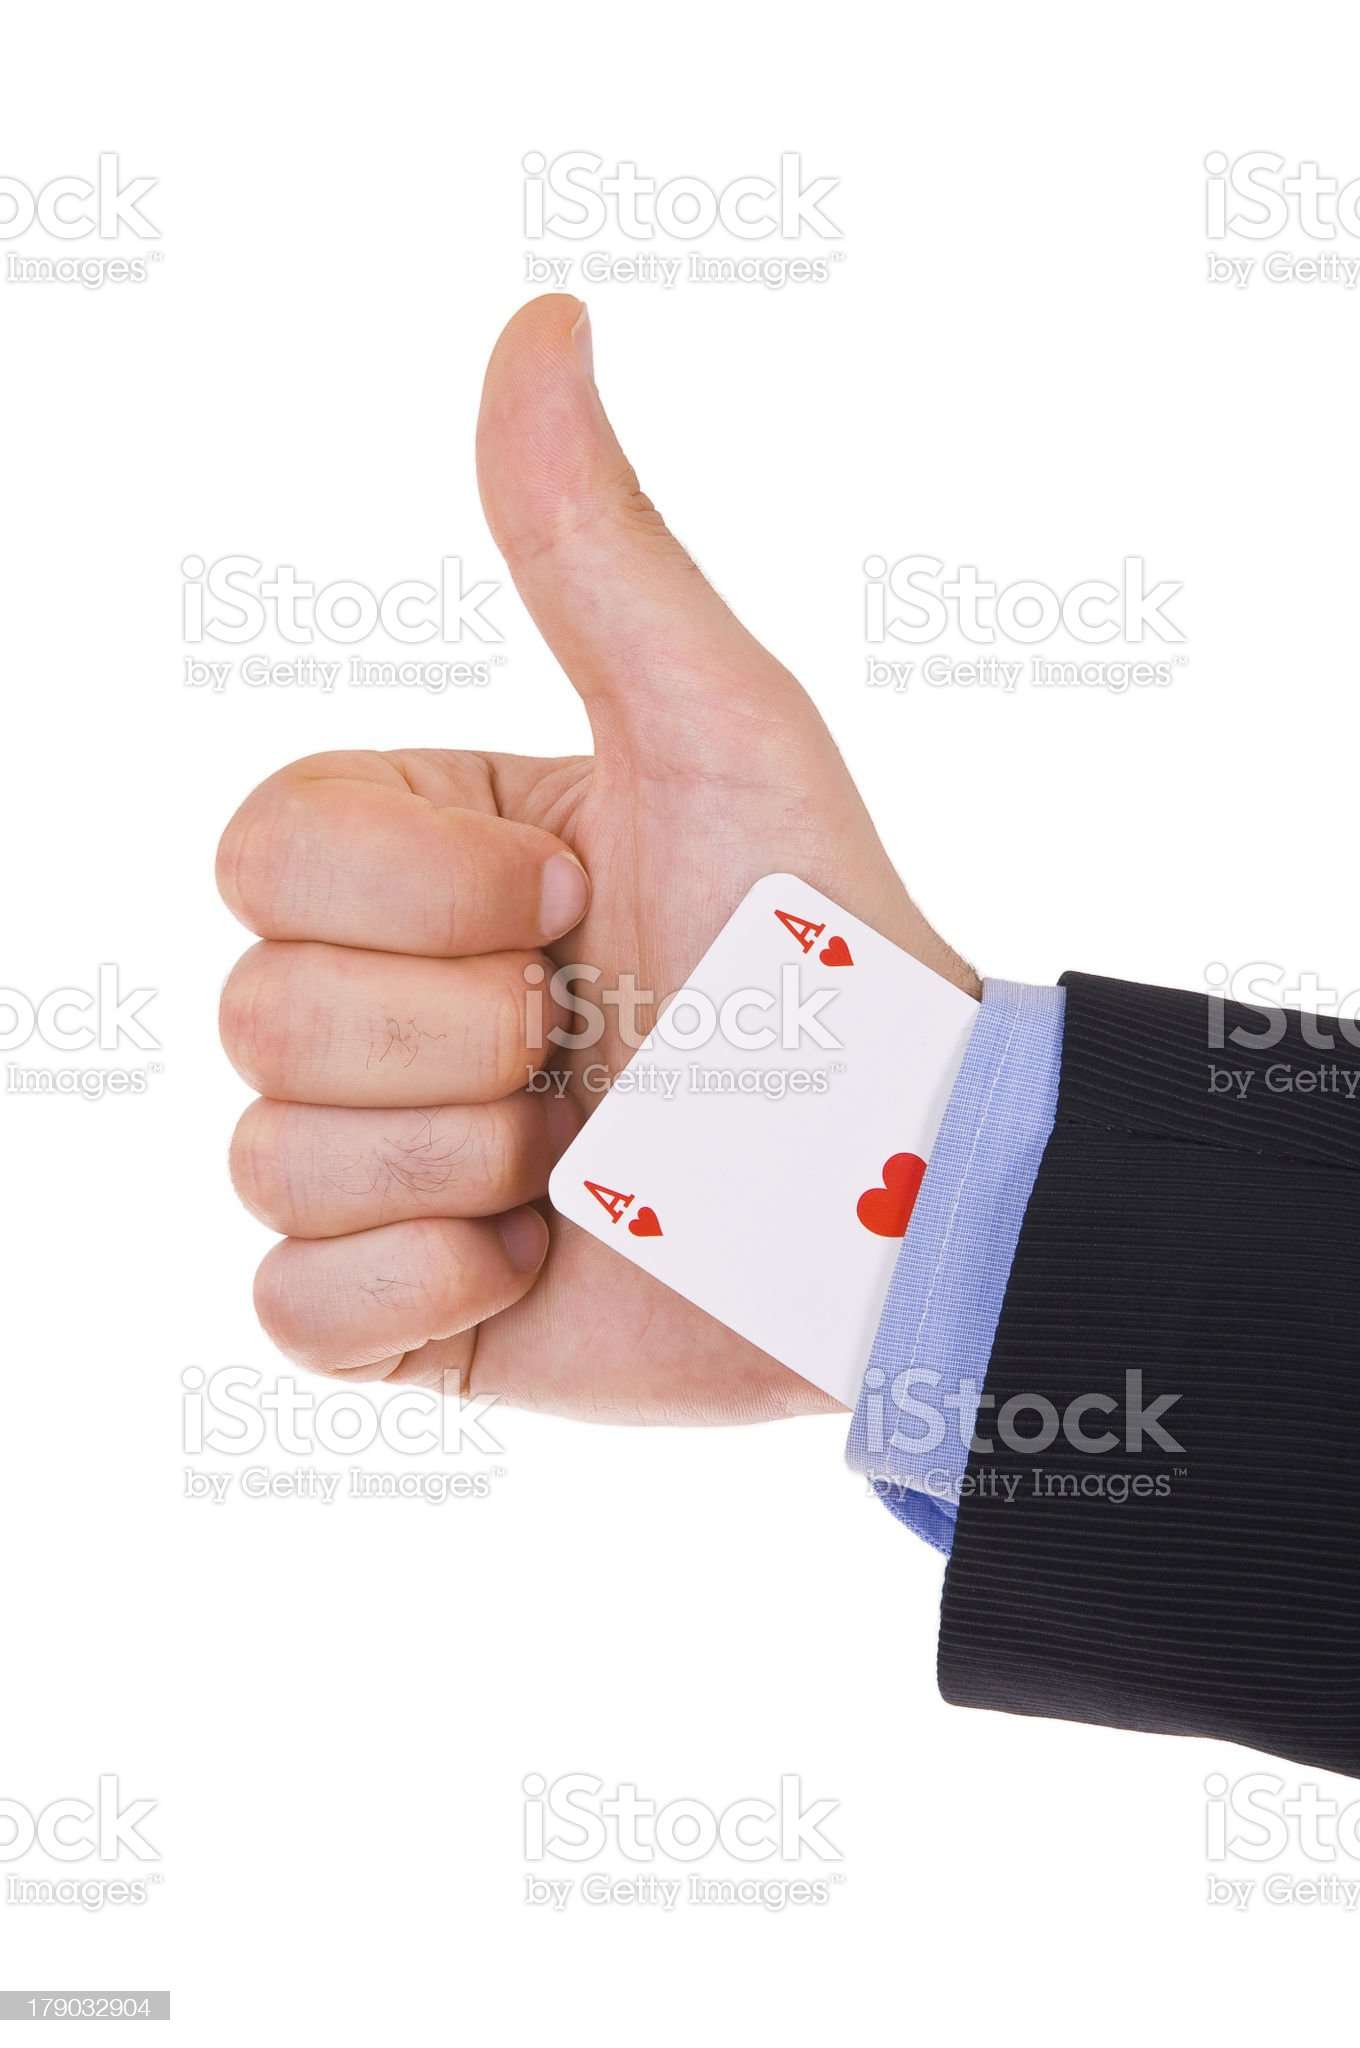 Business man showing ok sign with ace card under sleeve. royalty-free stock photo